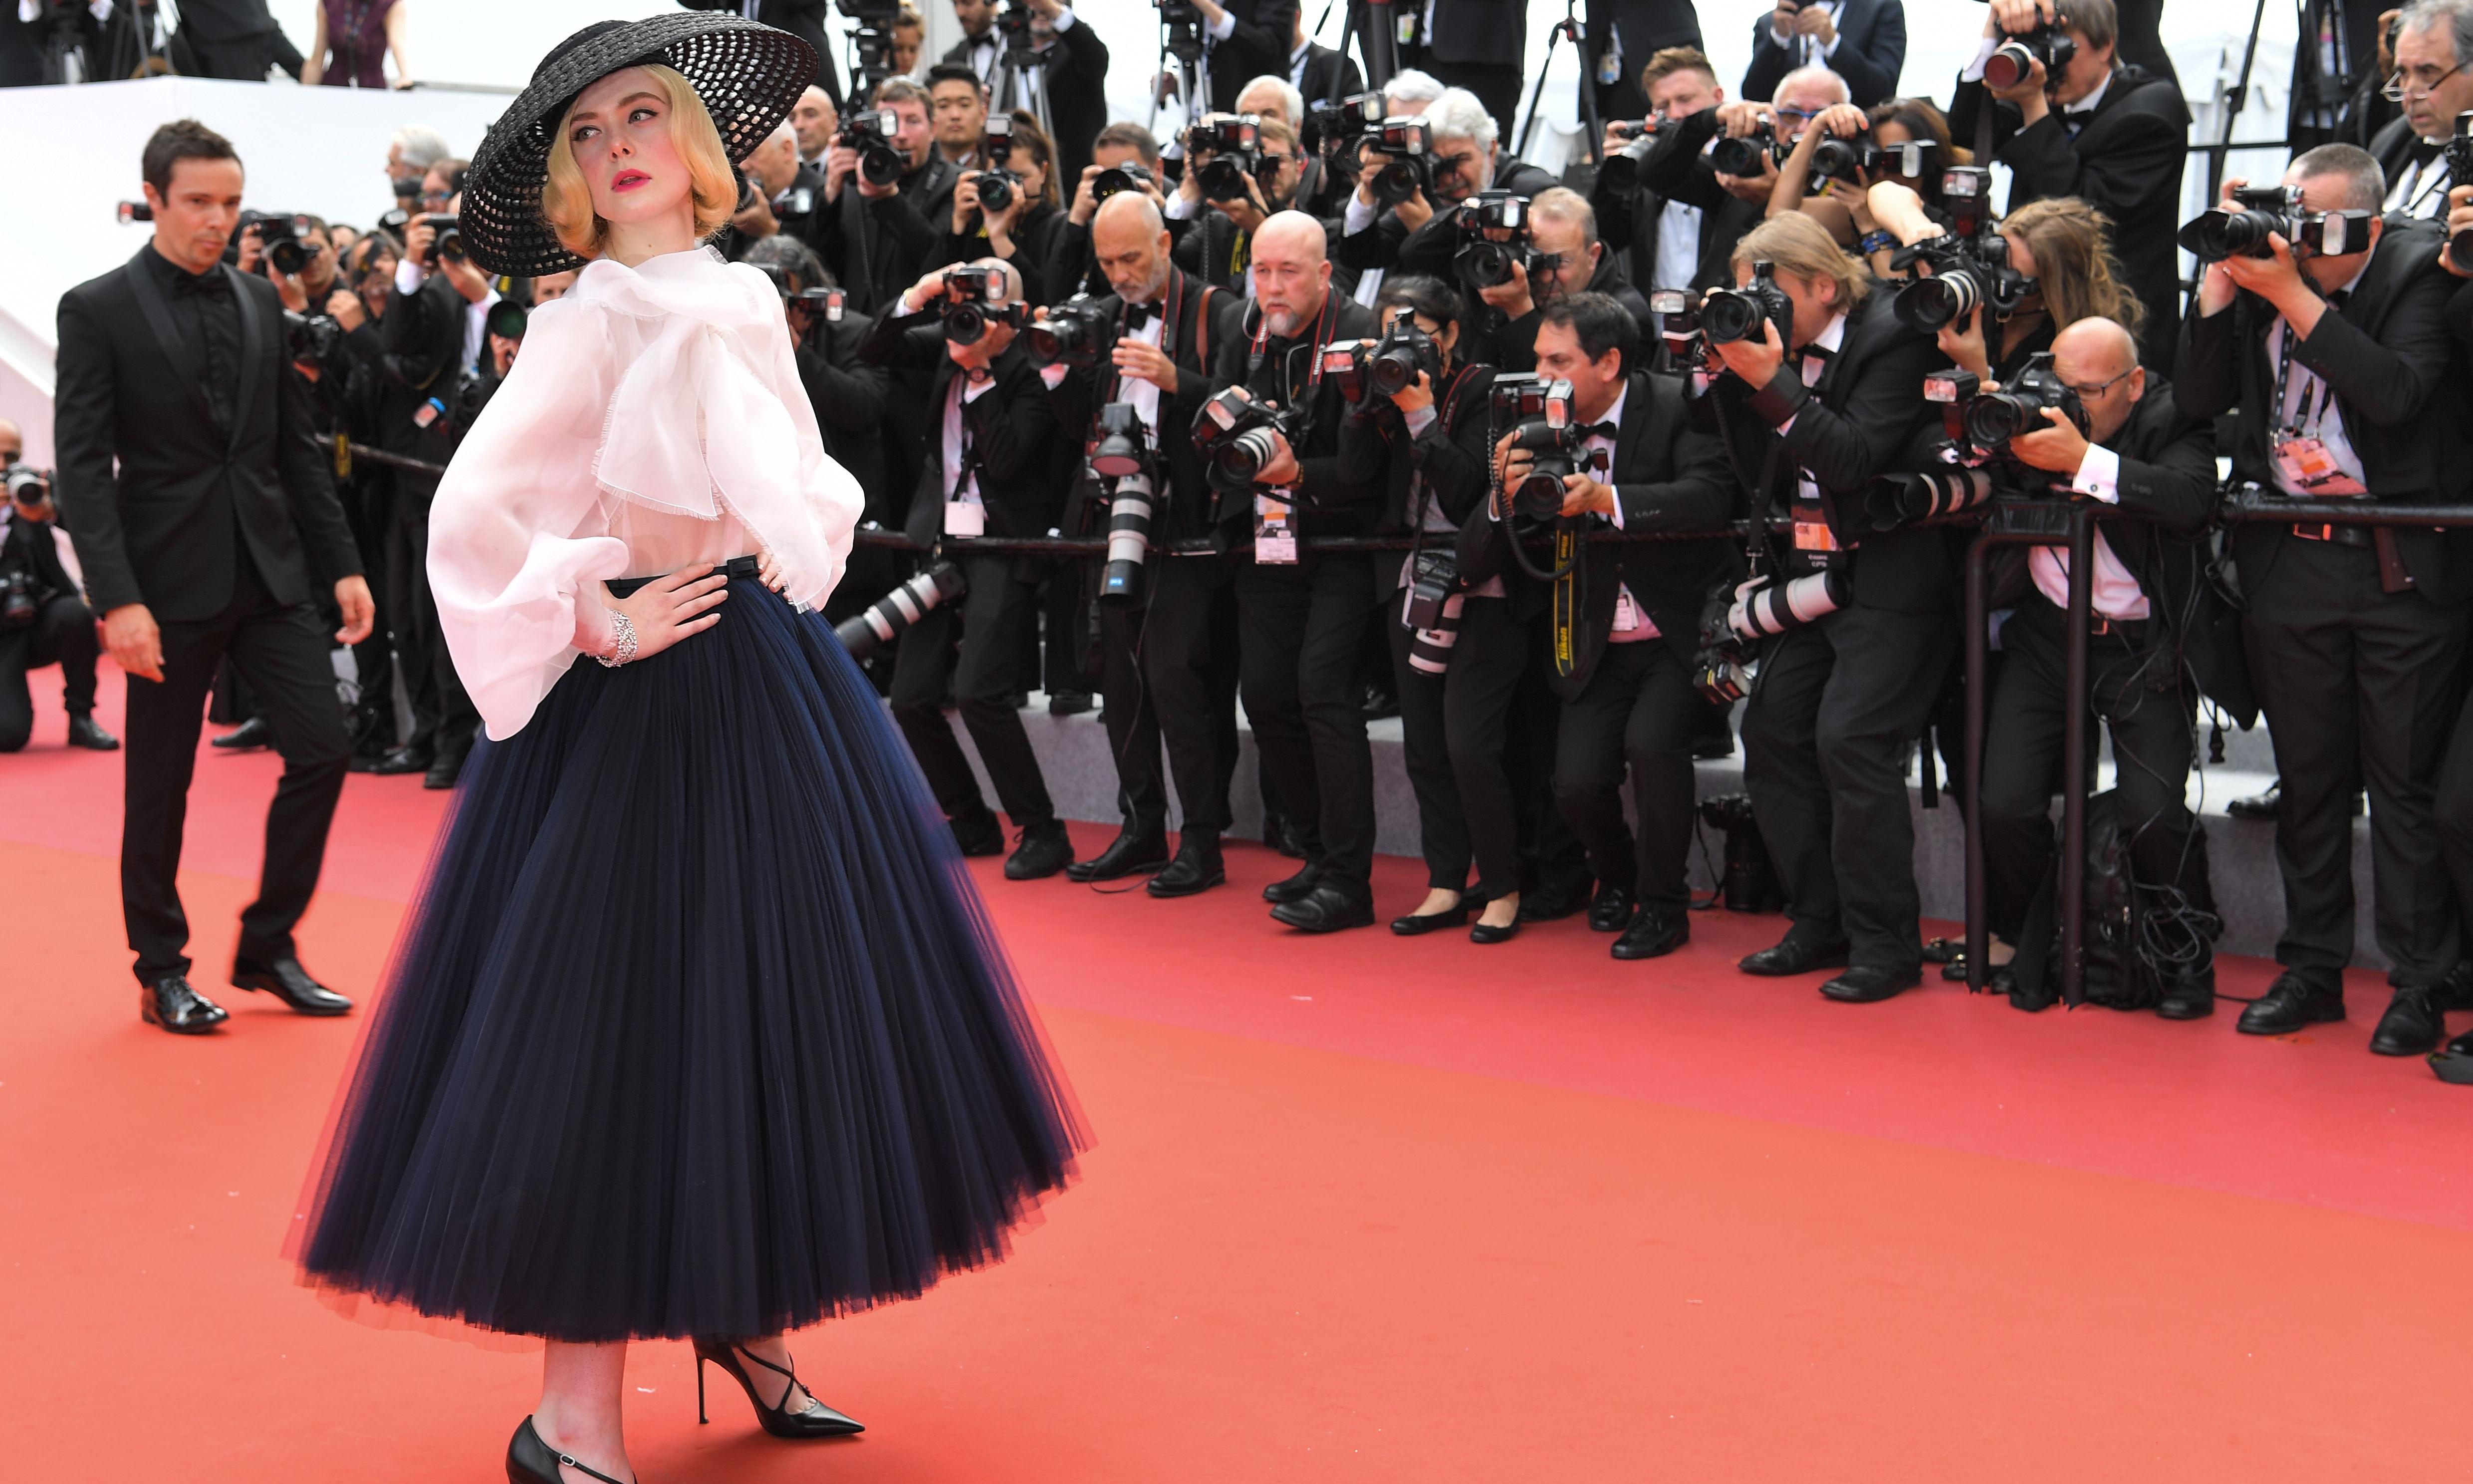 Tarantino is back! 10 things we learned from Cannes 2019